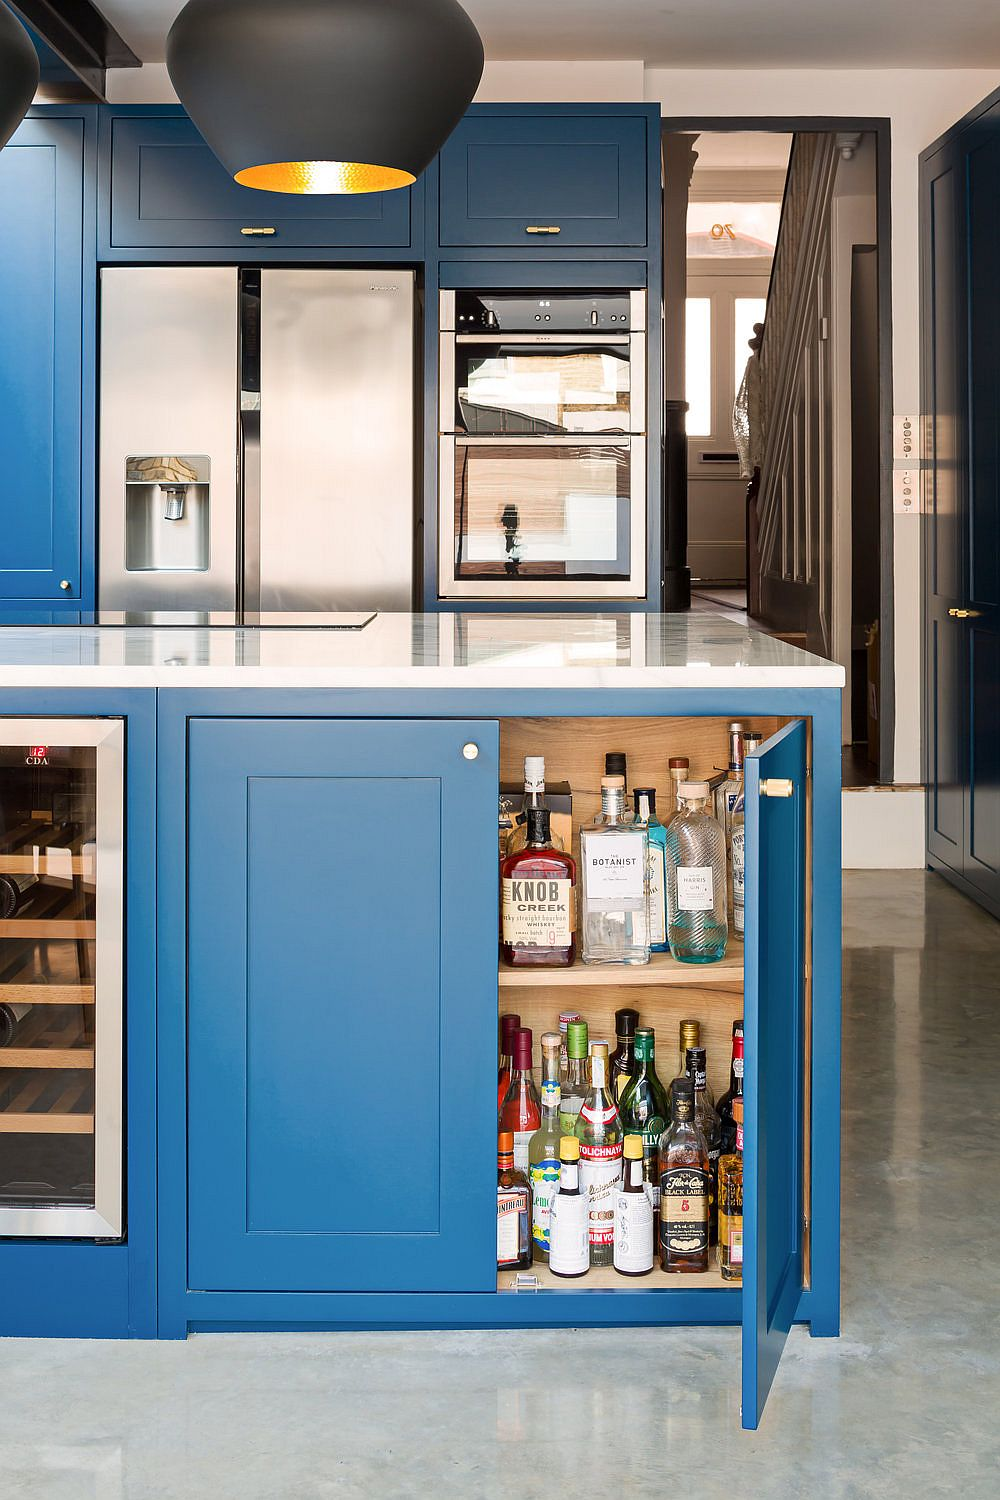 Doors of the kitchen island swing open to reveal ample storage space